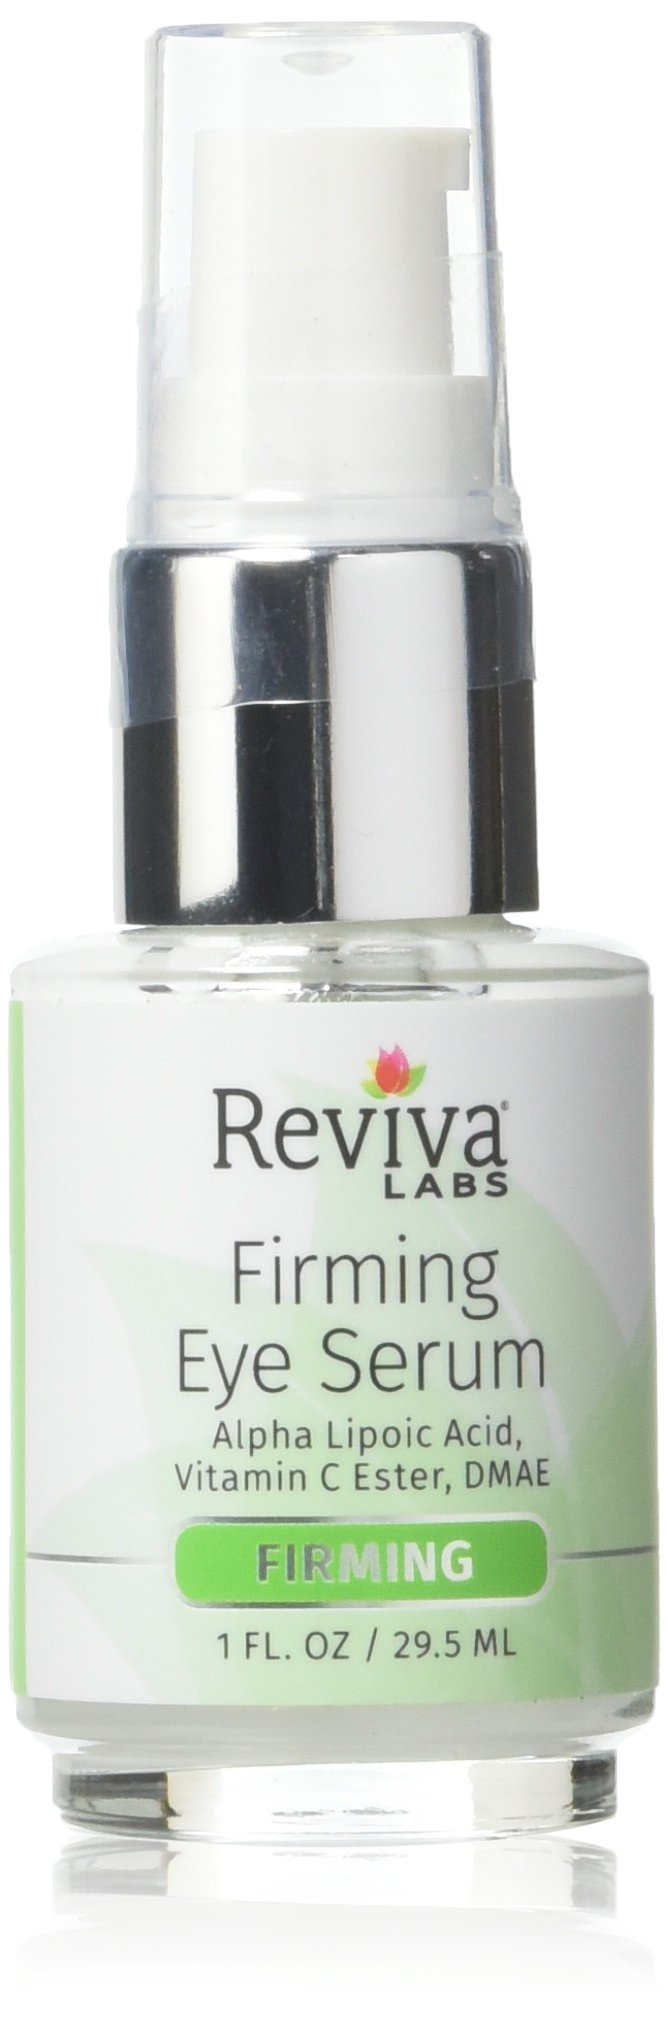 Reviva Firming Eye Serum, Alpha Lipoic Acid, 1 oz.